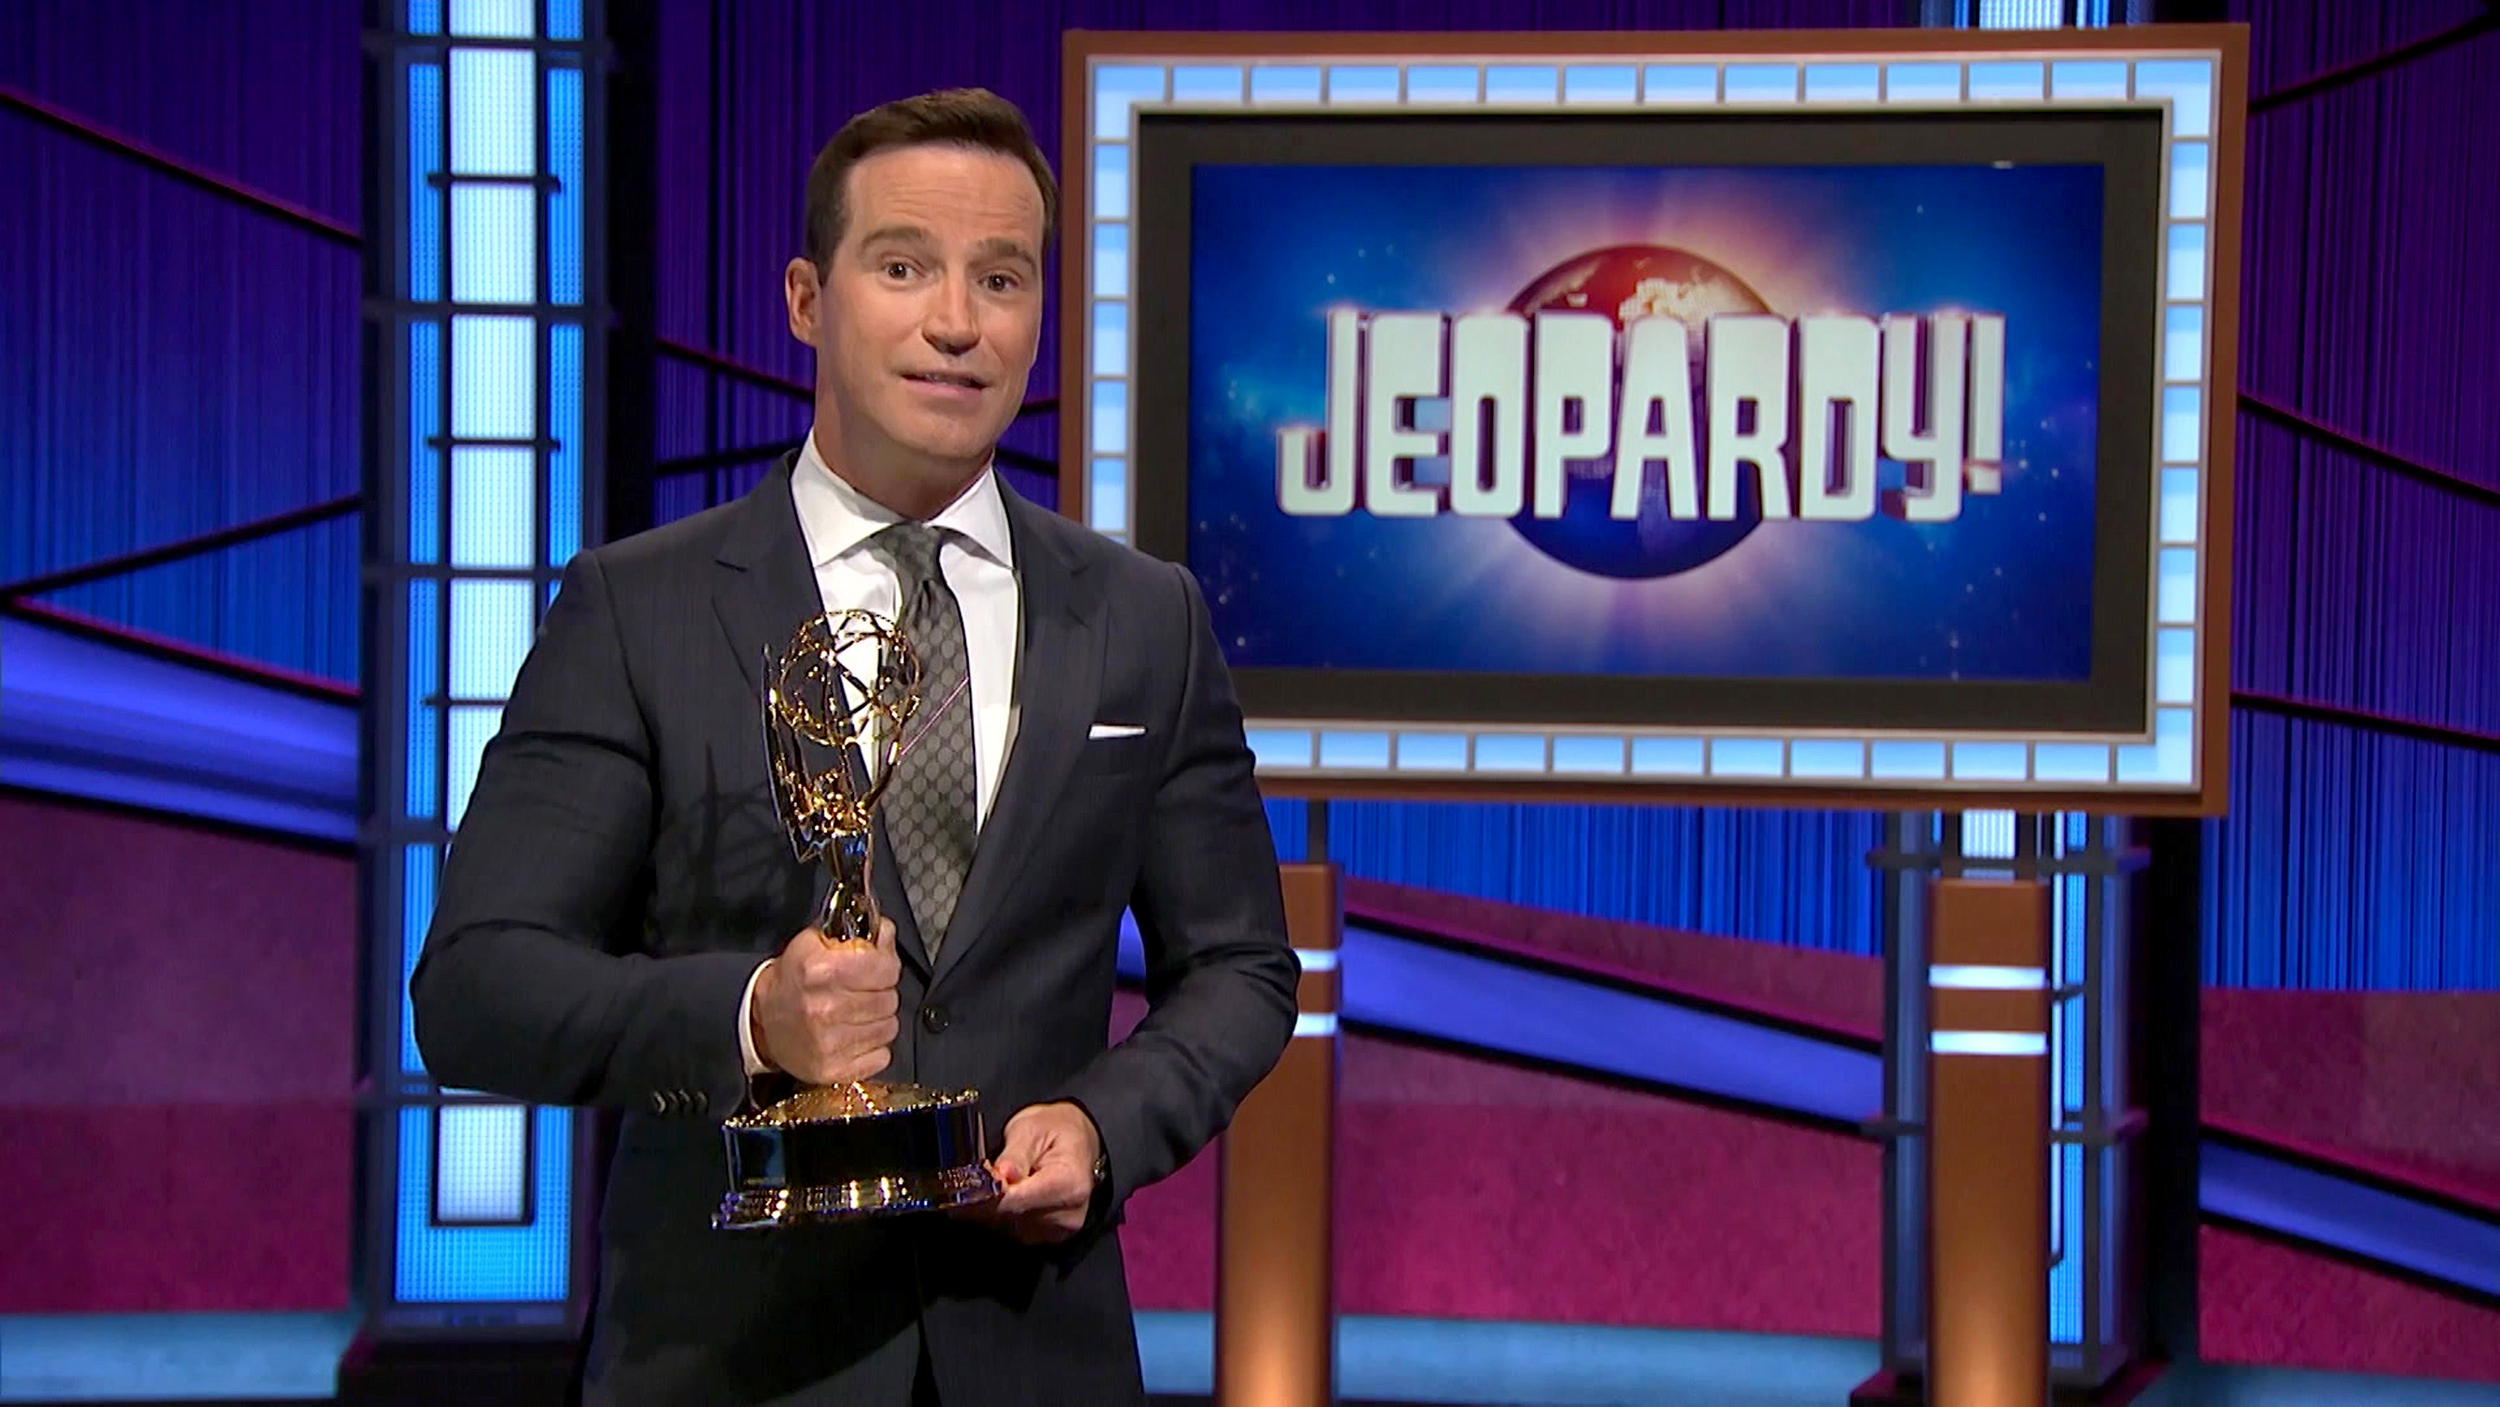 'Jeopardy!' is answer to 'What show can't afford another 'colossal hiring mistake'?'